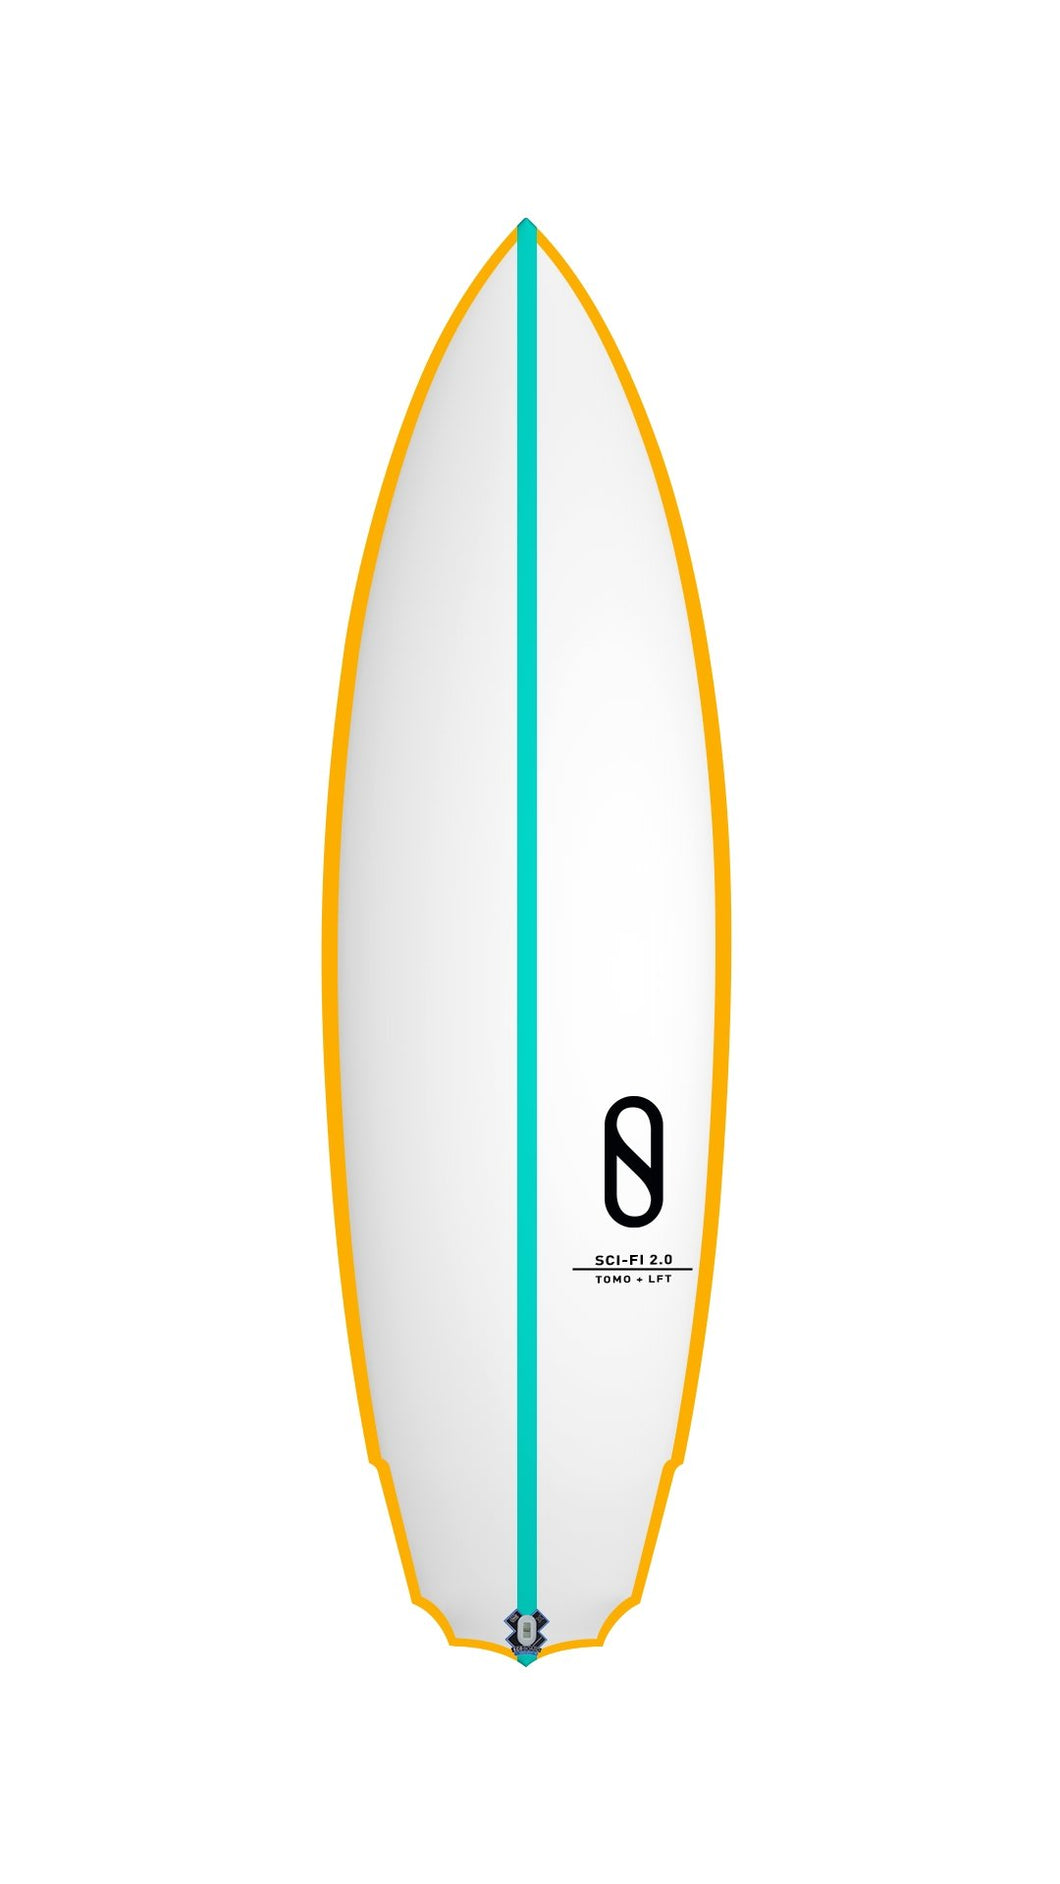 Slater Designs Sci-Fi 2.0 Grom 2021 - KS Boardriders | Philippines Online Branded Clothes & Surf Shop